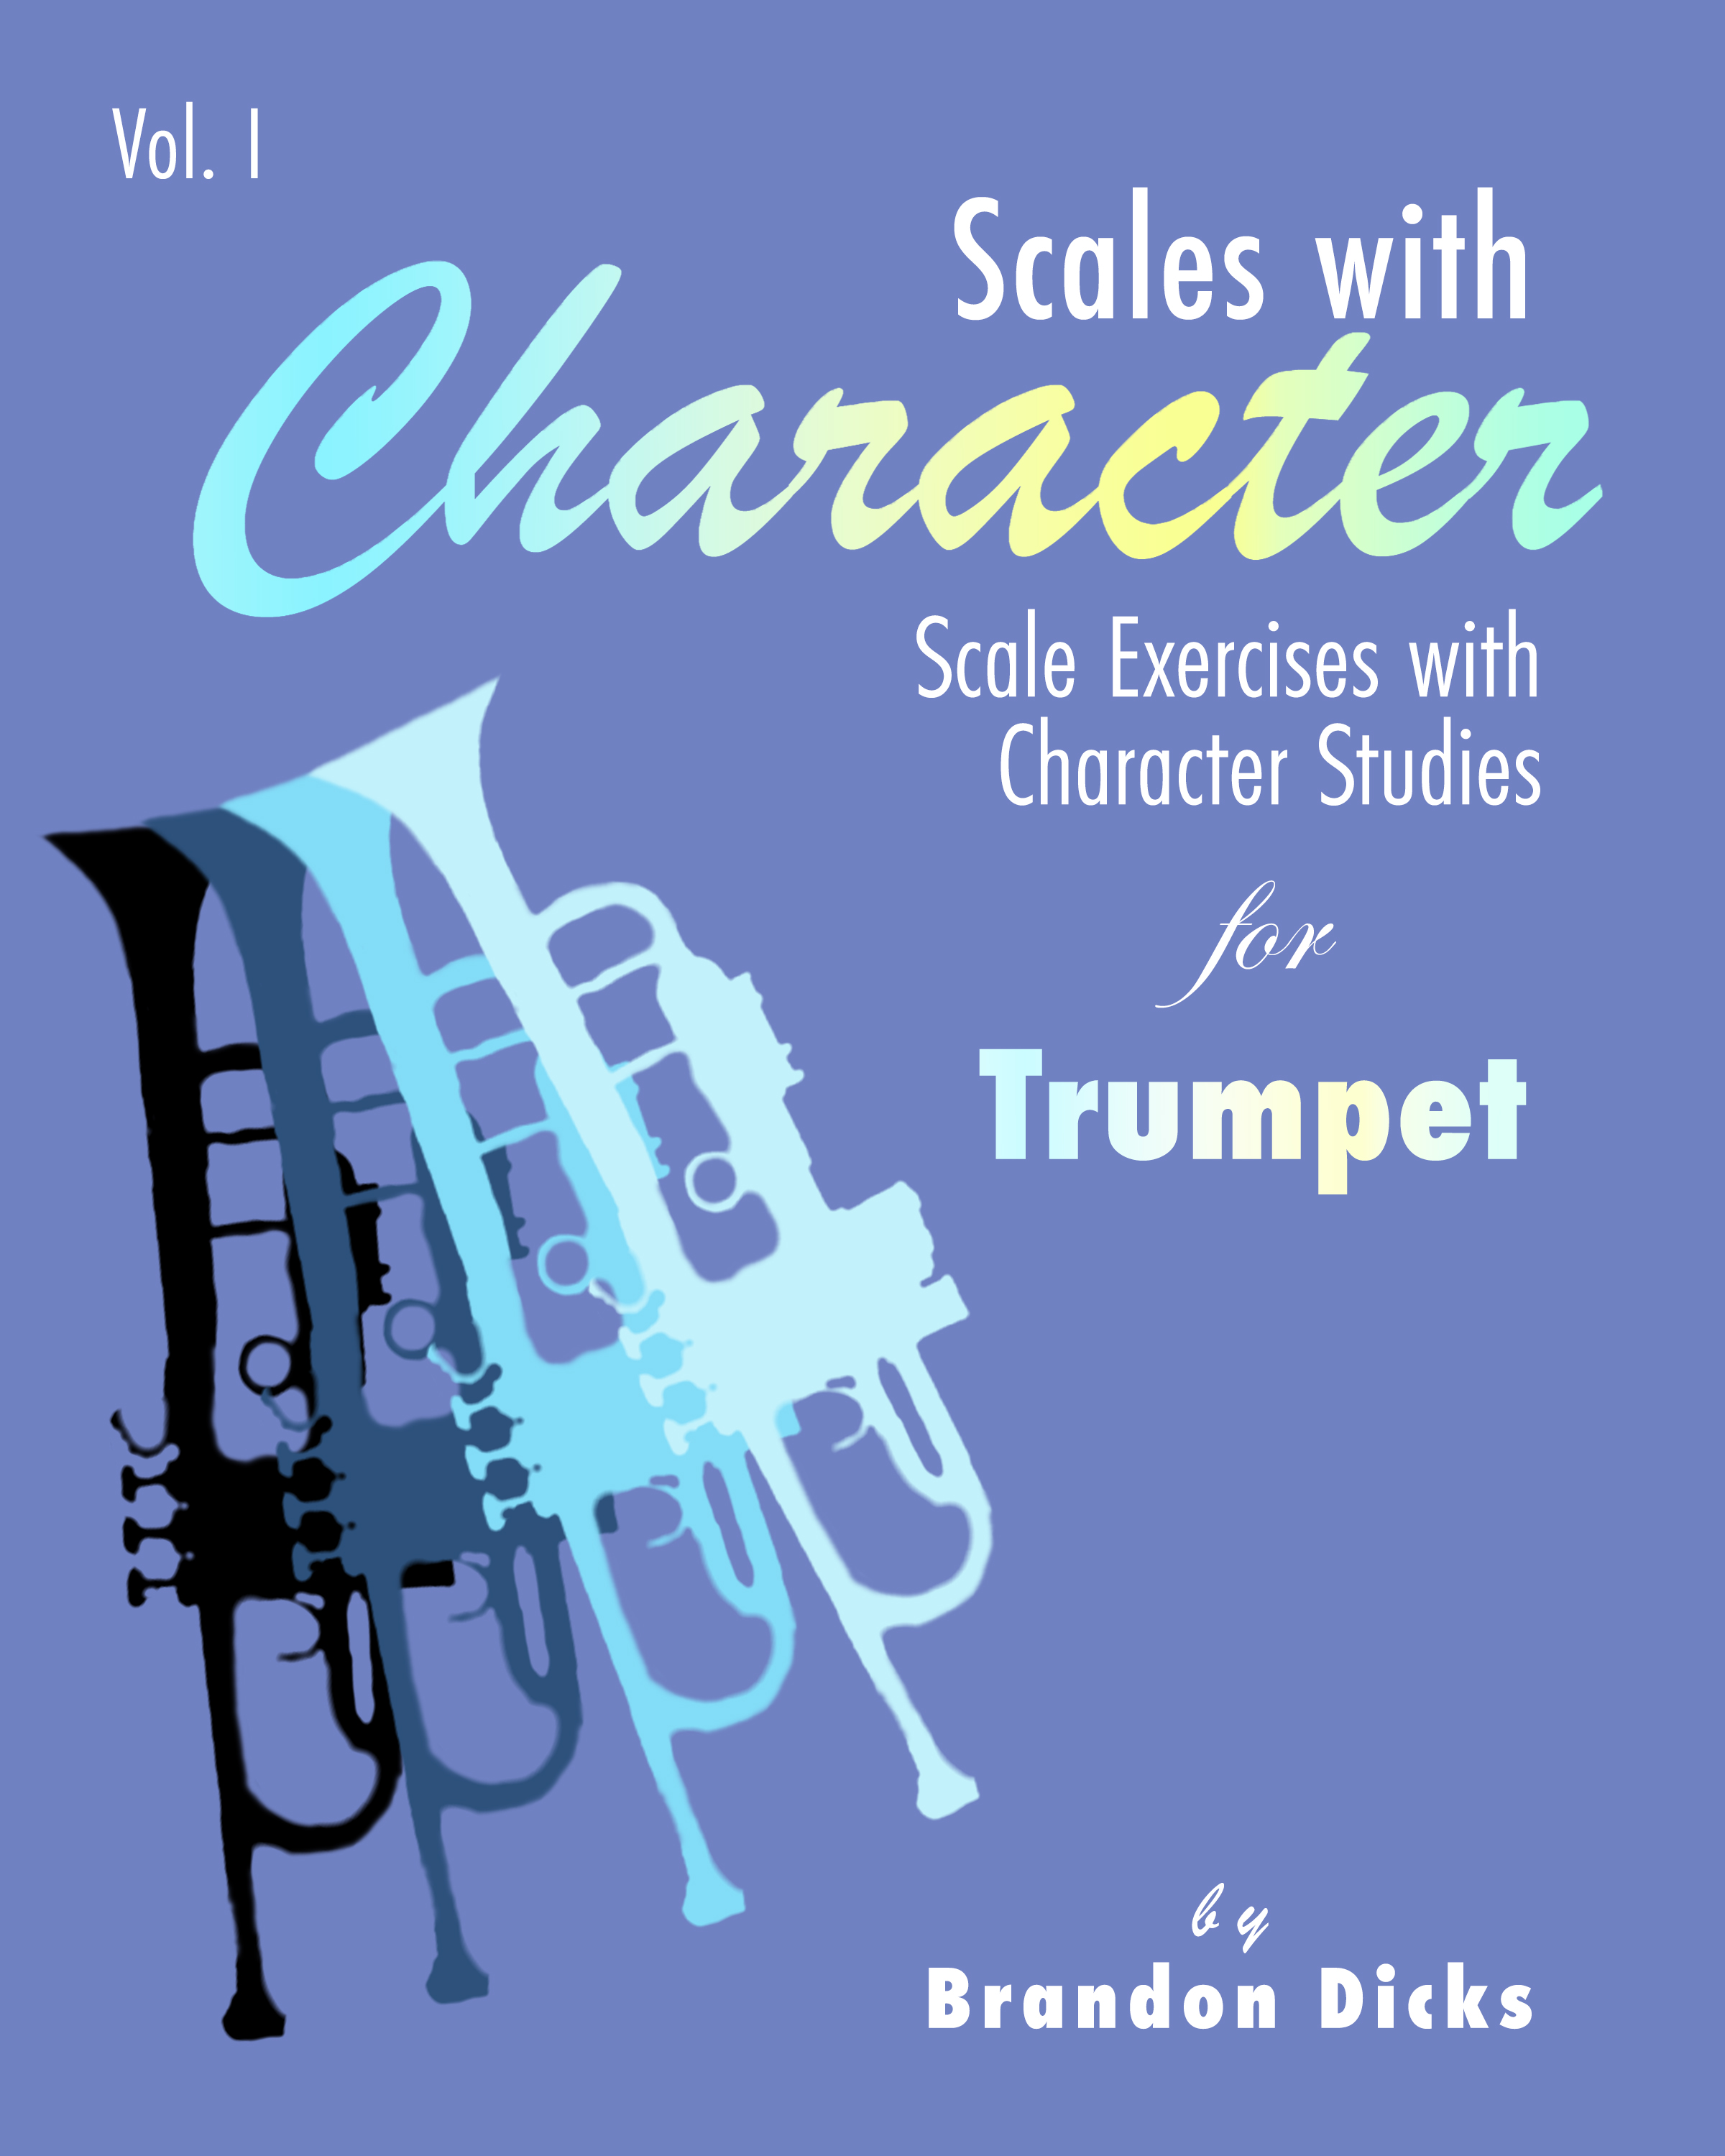 Scales with Character (Final).jpg